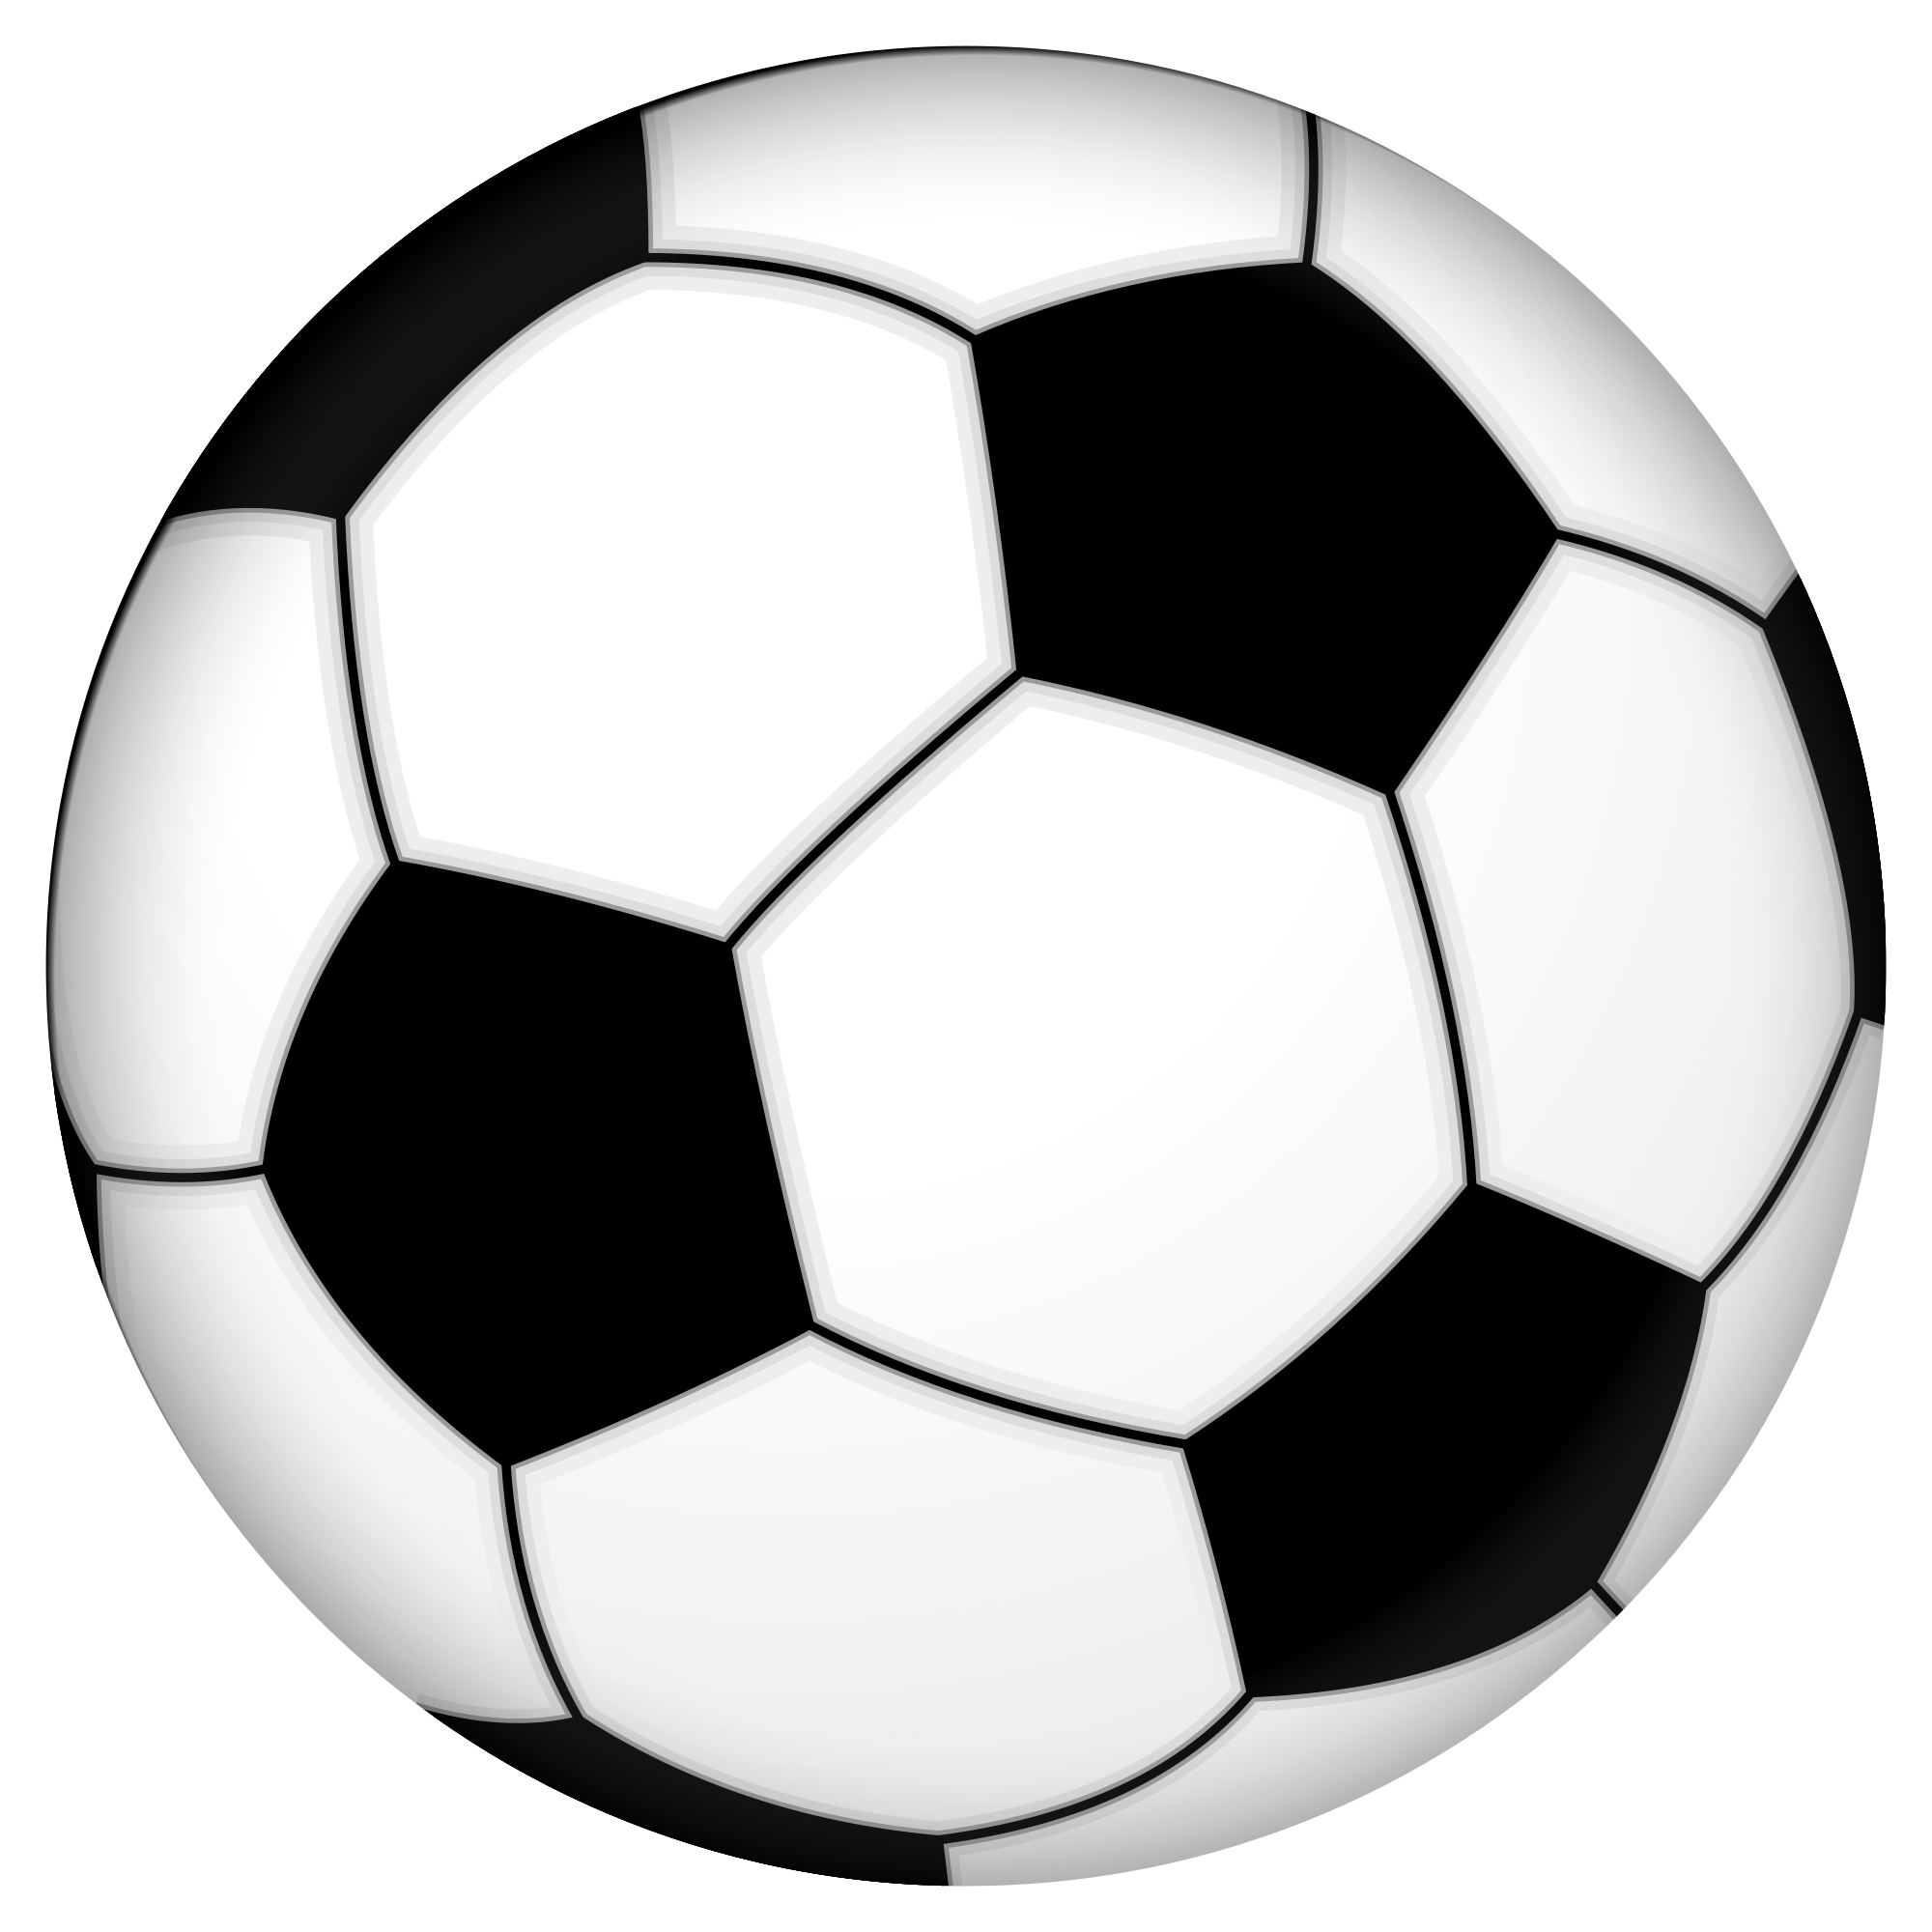 2000x2000 Blue Soccer Ball Clipart Free Clipart Images